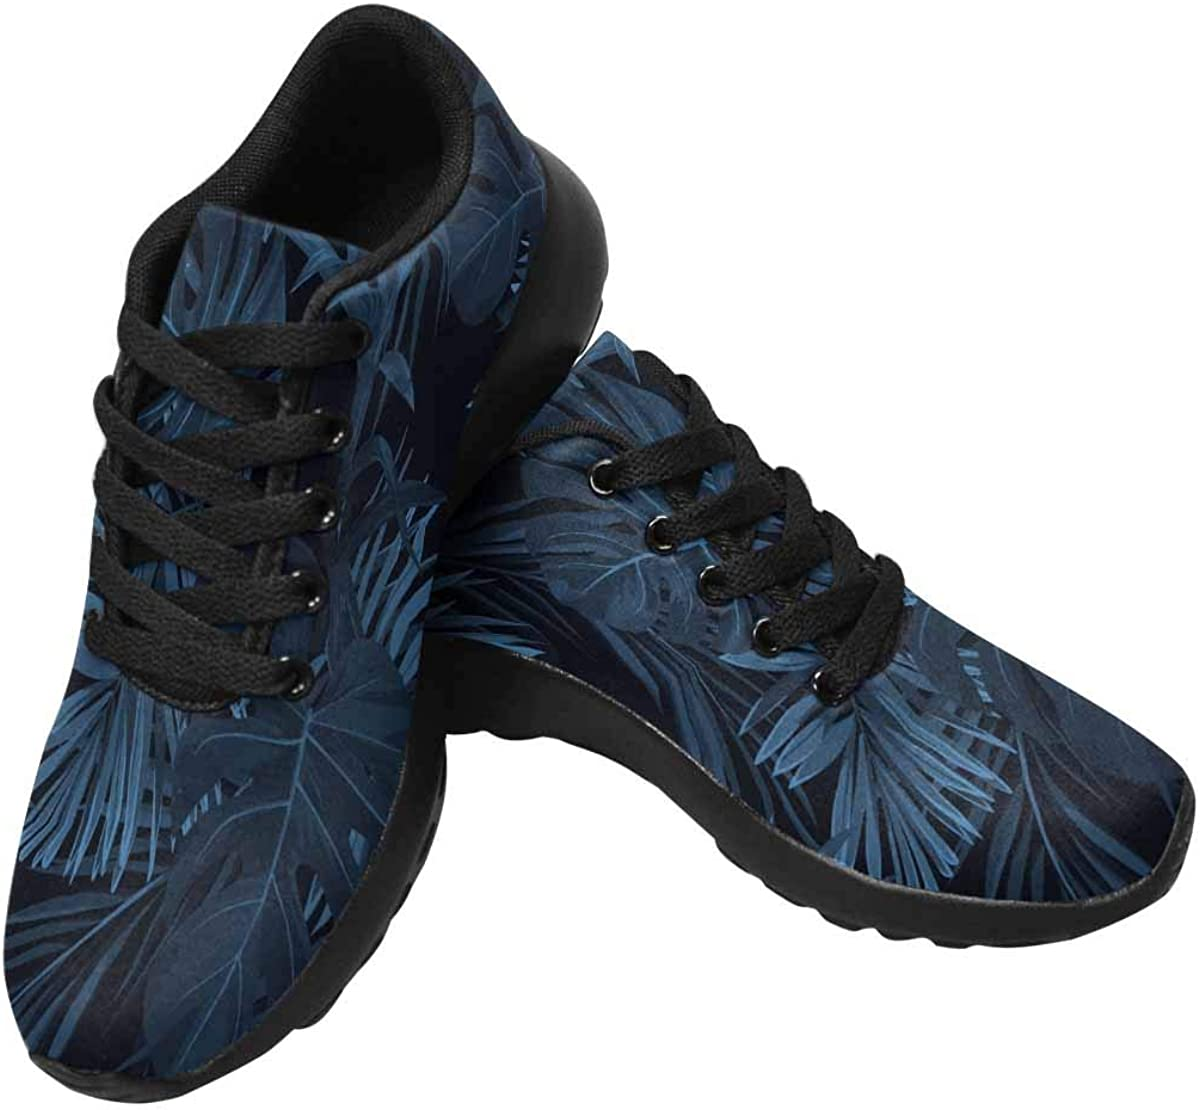 InterestPrint Women's Running Shoes - Casual Breathable Athletic Tennis Sneakers Hawaiian Plants and Flowers